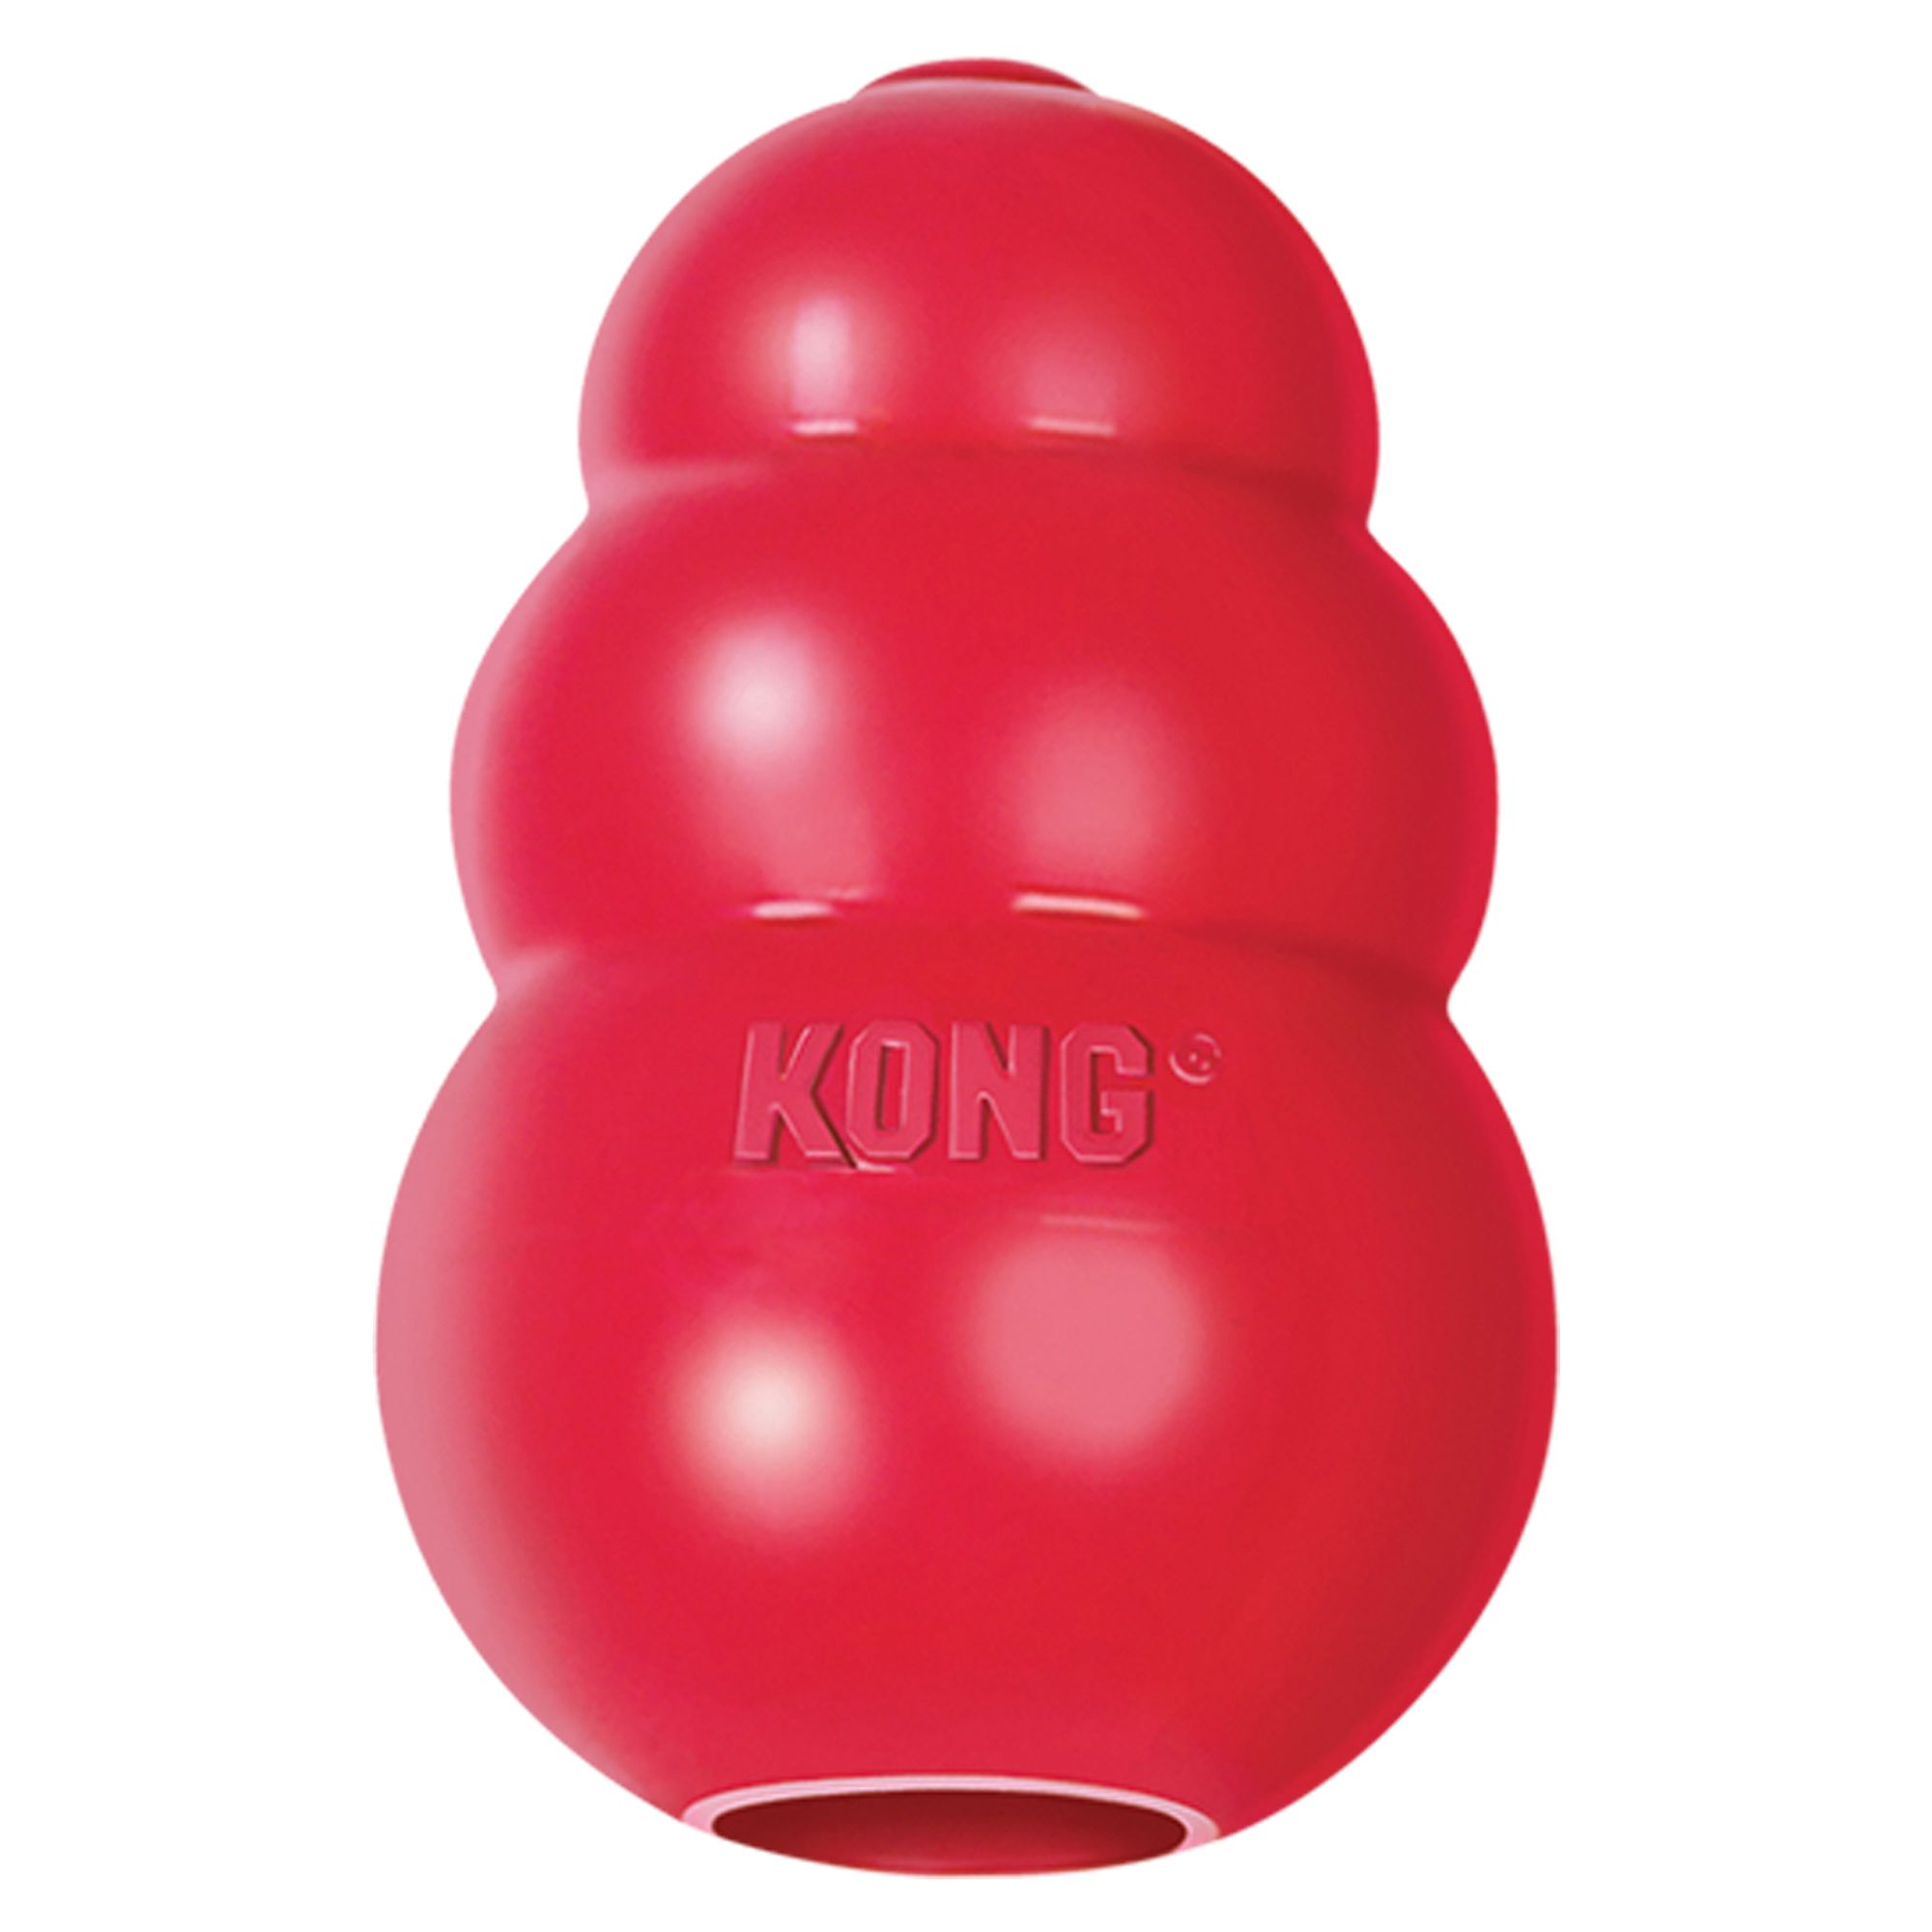 Kong Classic Dog Toy - Treat Dispensing size: Medium, Red 1811626